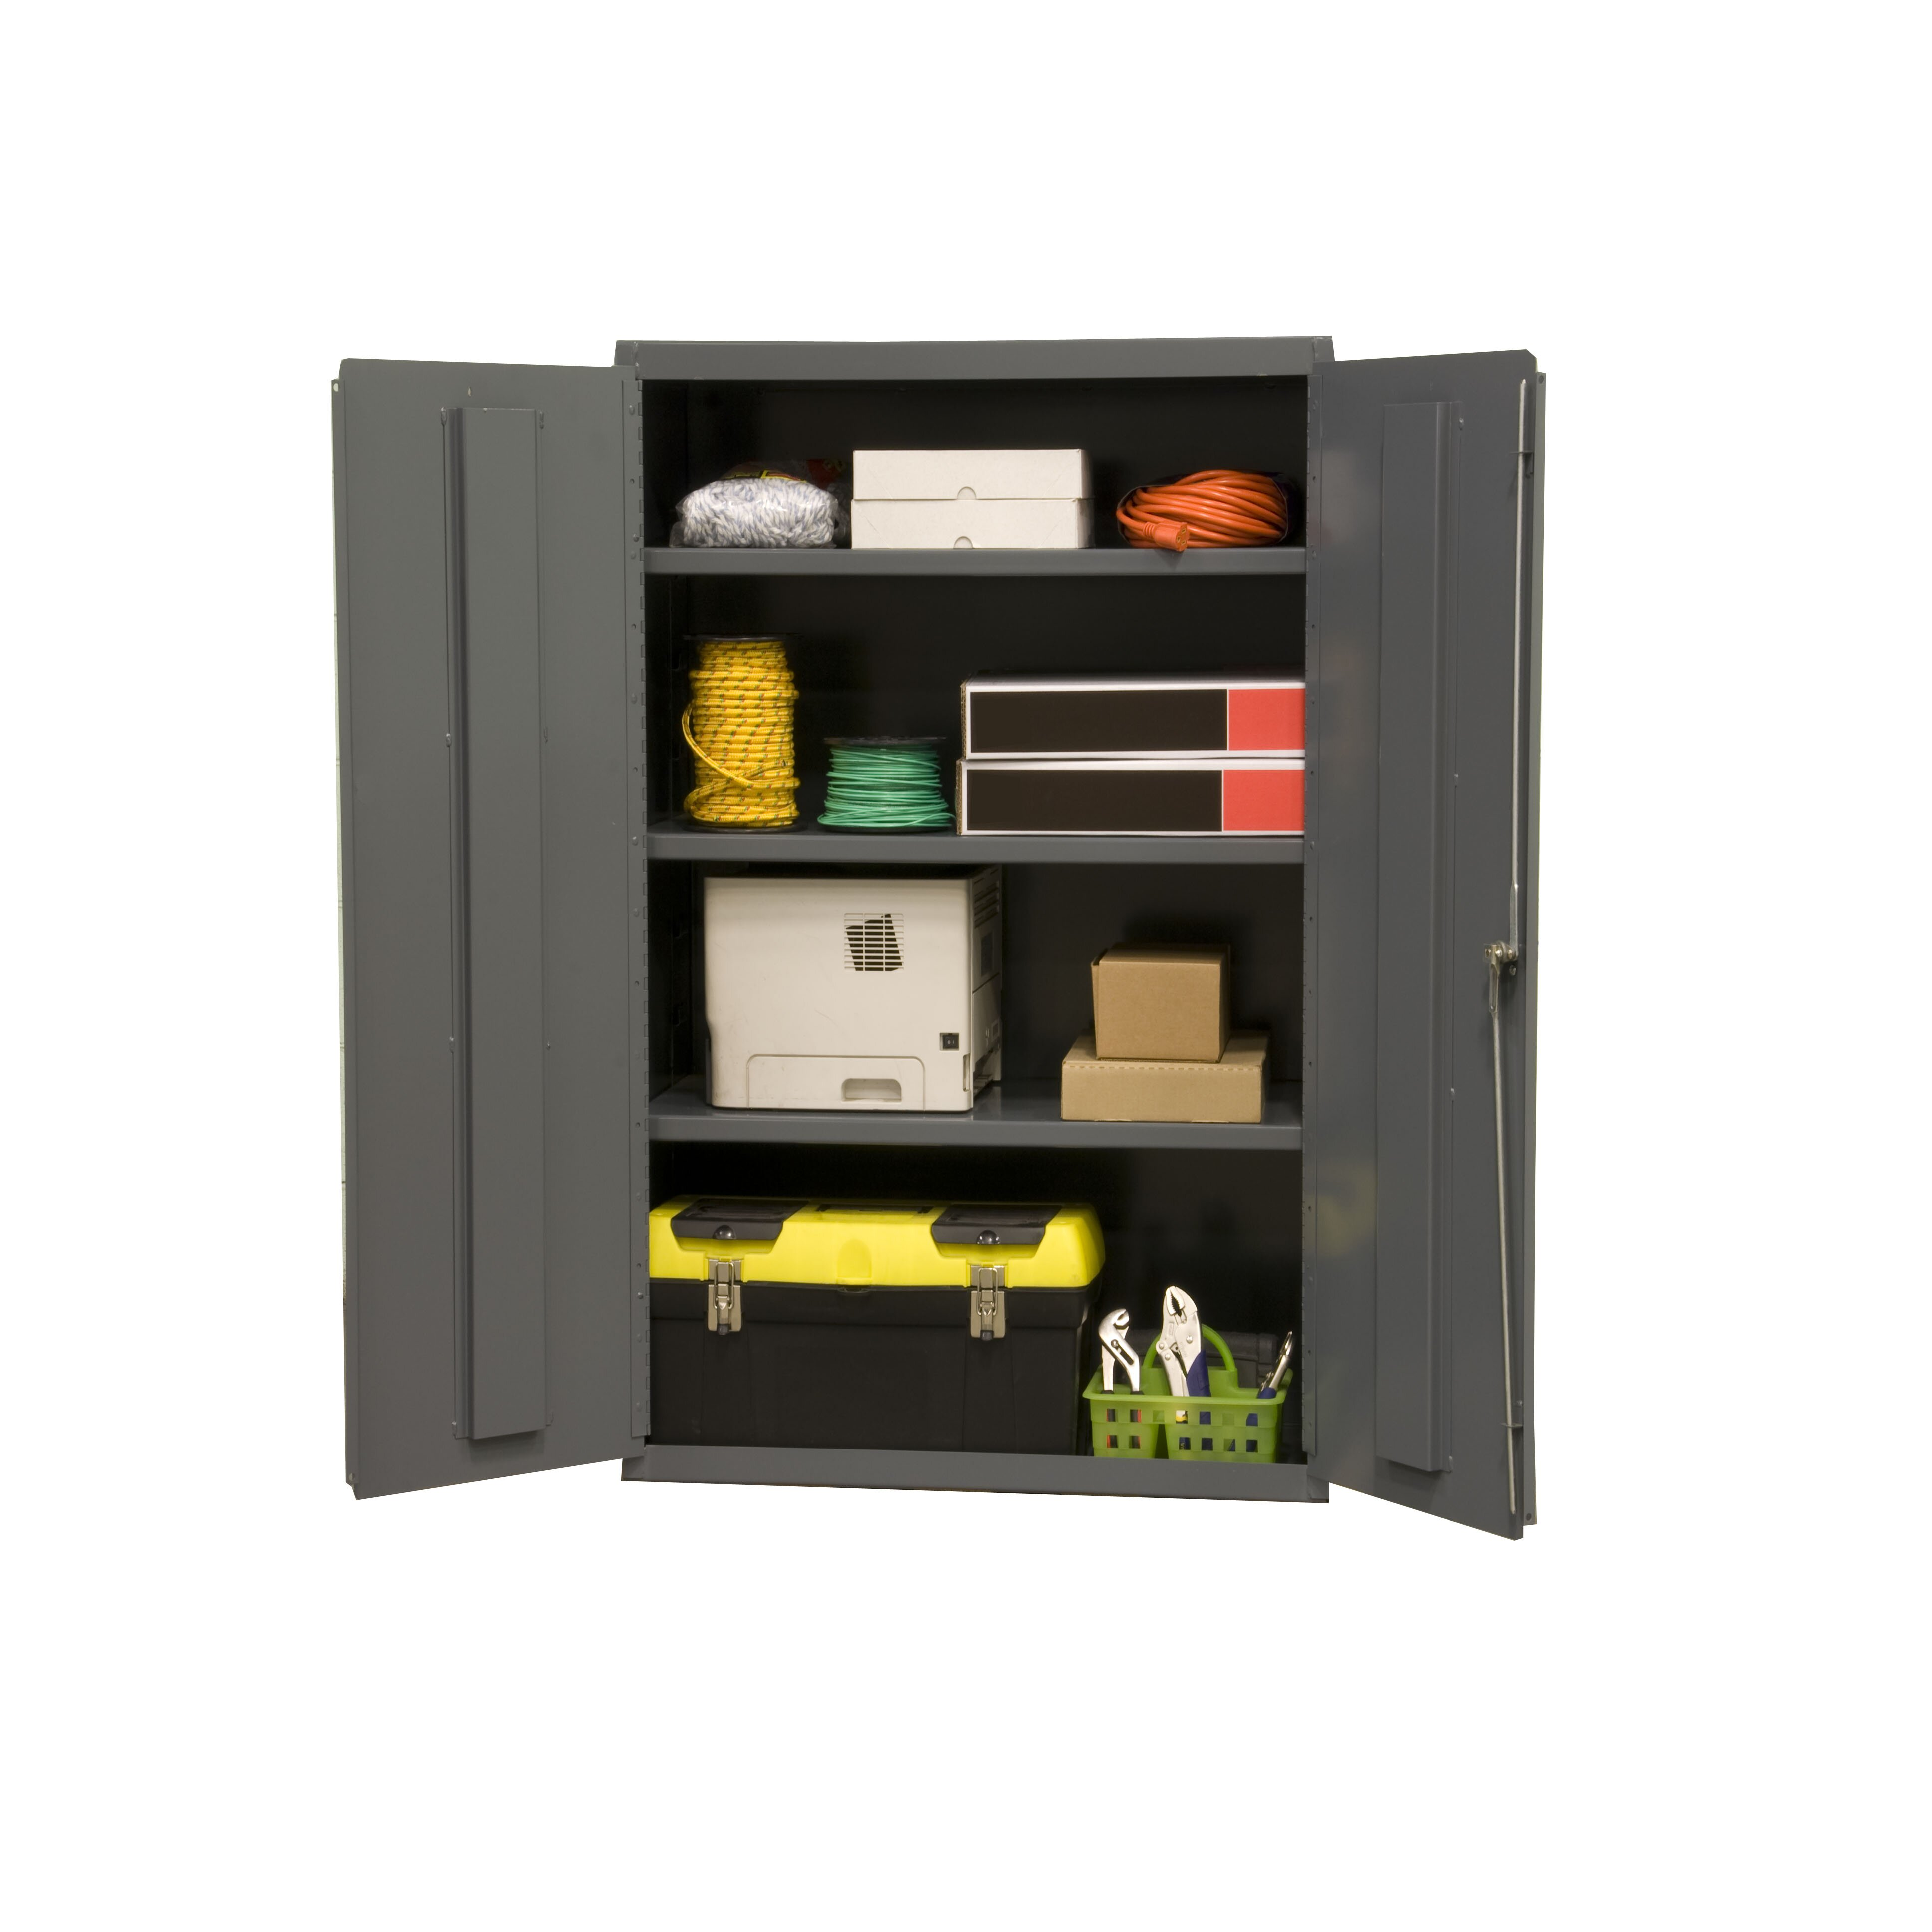 Durham manufacturing 60 h x 36 w x 18 d cabinet wayfair for 18 x 60 window